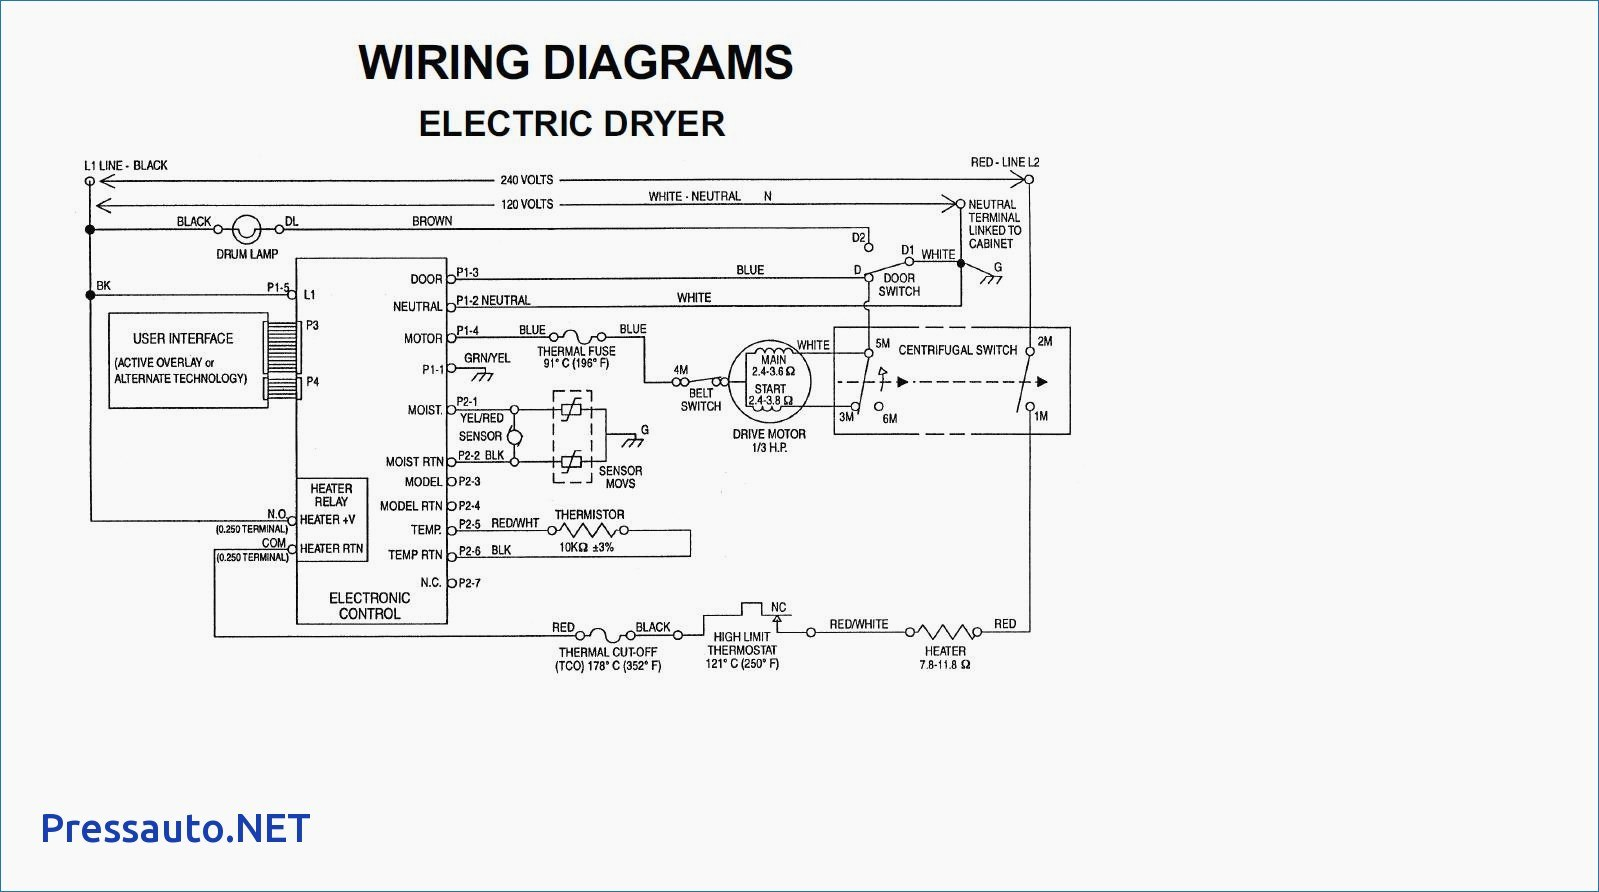 kenmore dryer wiring diagram Download-Electrical Circuit Diagram Wonderful Kenmore Dryer Wiring Diagram Fitfathers Me Que Wire 37 Unique Electrical 16-o